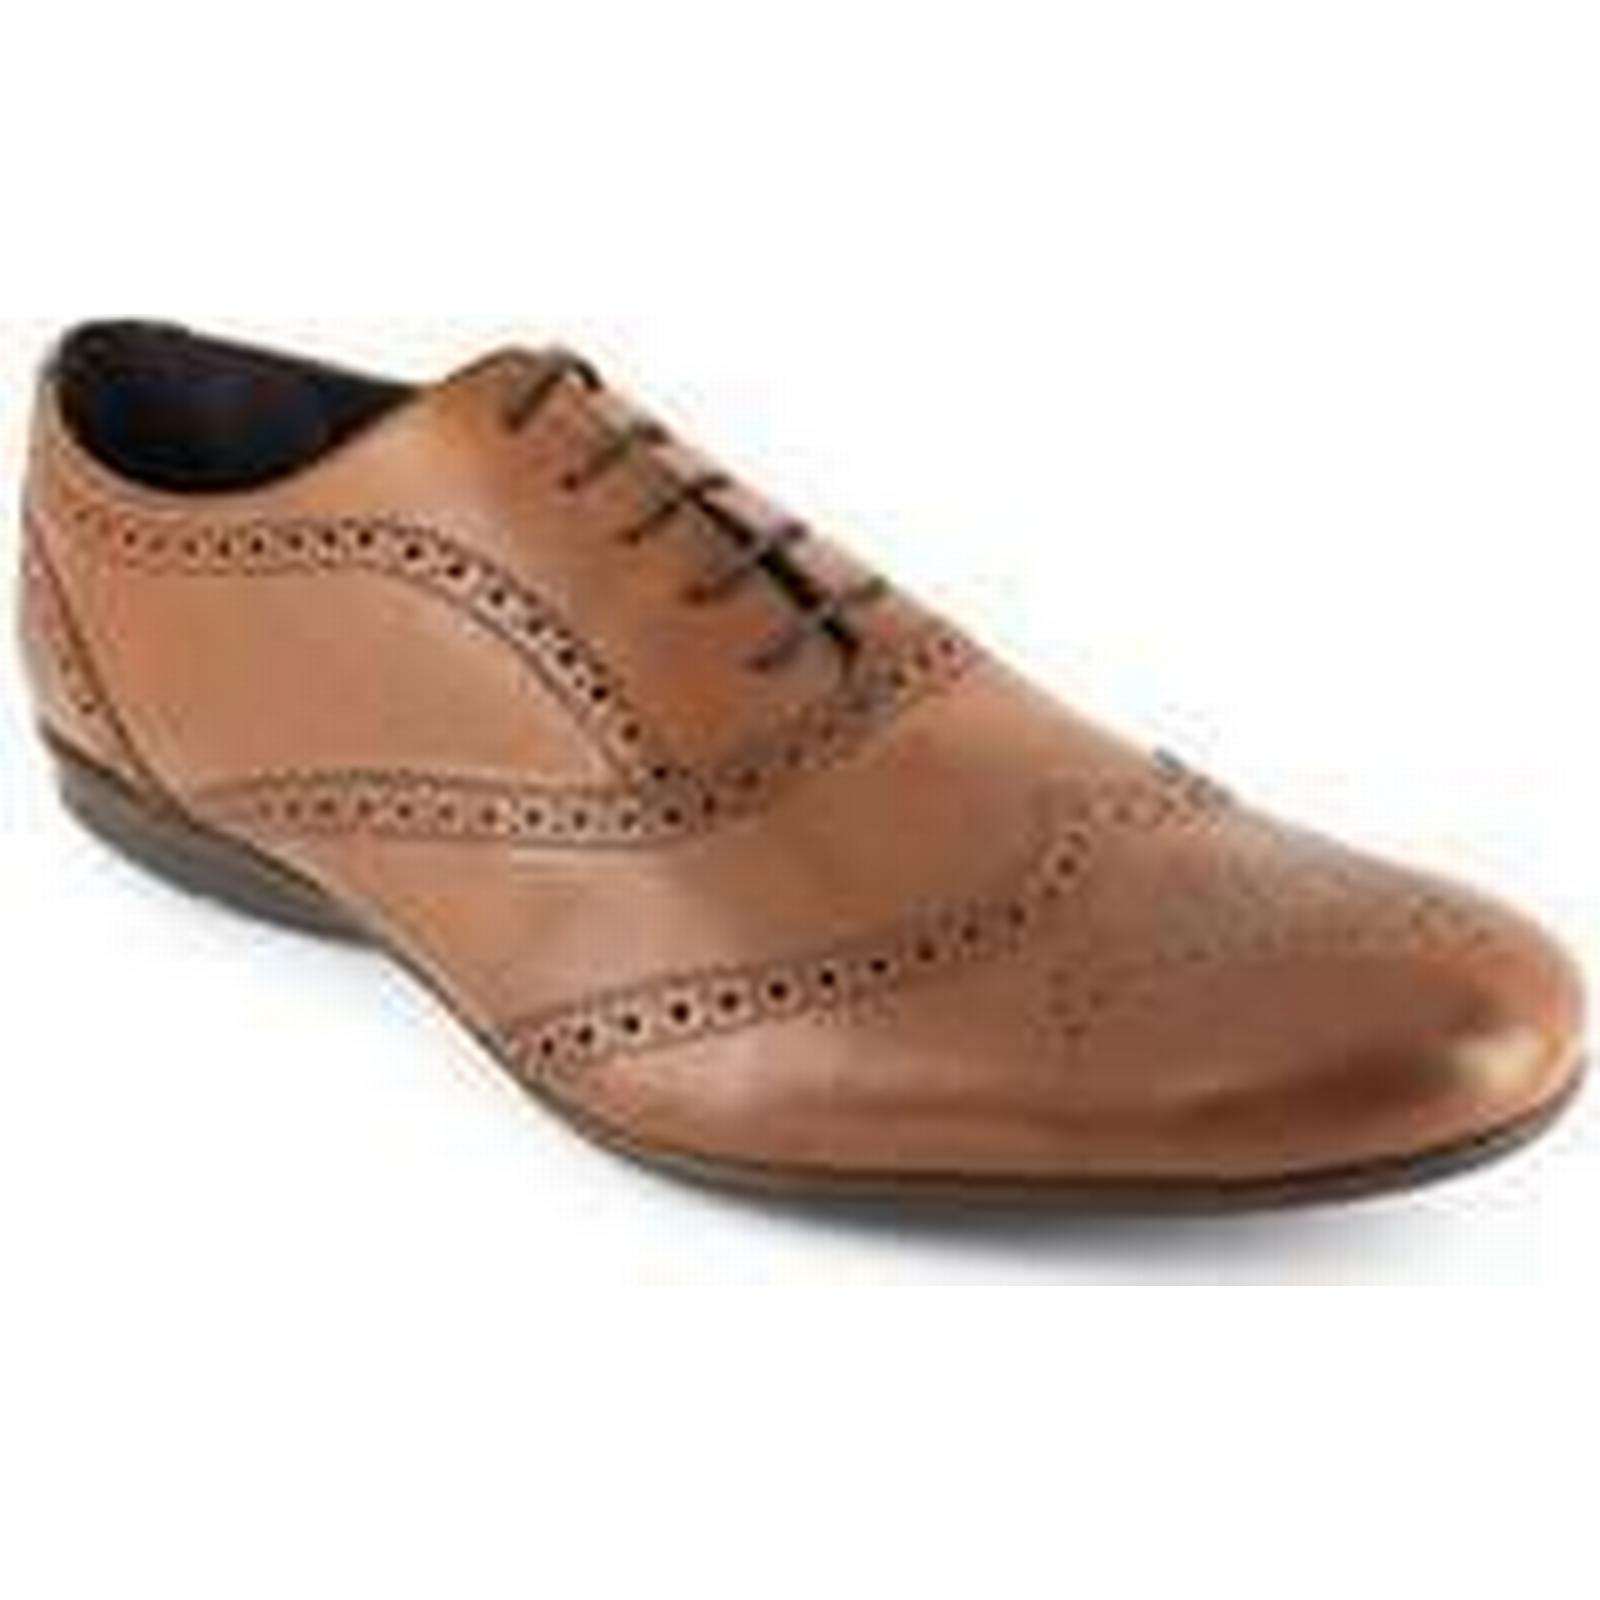 Spartoo.co.uk J.bradford Richelieu Camel / Leather JB-OLMO men's Smart / Camel Formal Shoes in Brown 089b39